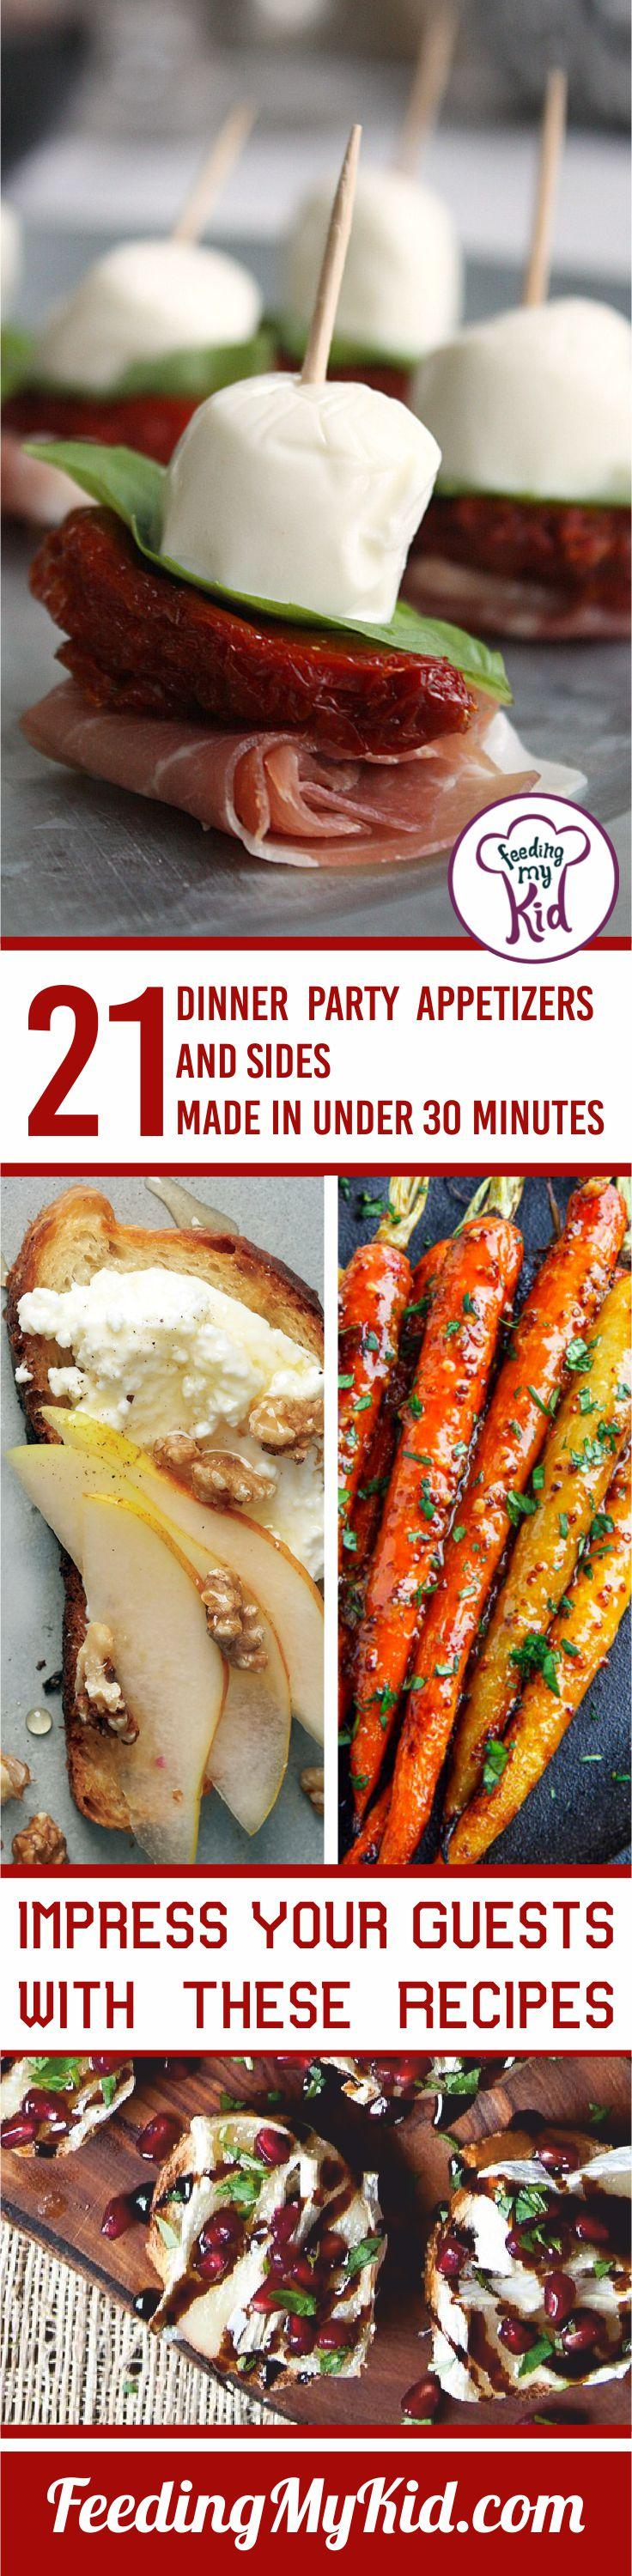 Don't get stuck in your kitchen all night. Enjoy your dinner party with these easy appetizer recipes and sides that will be done in under 30 minutes!